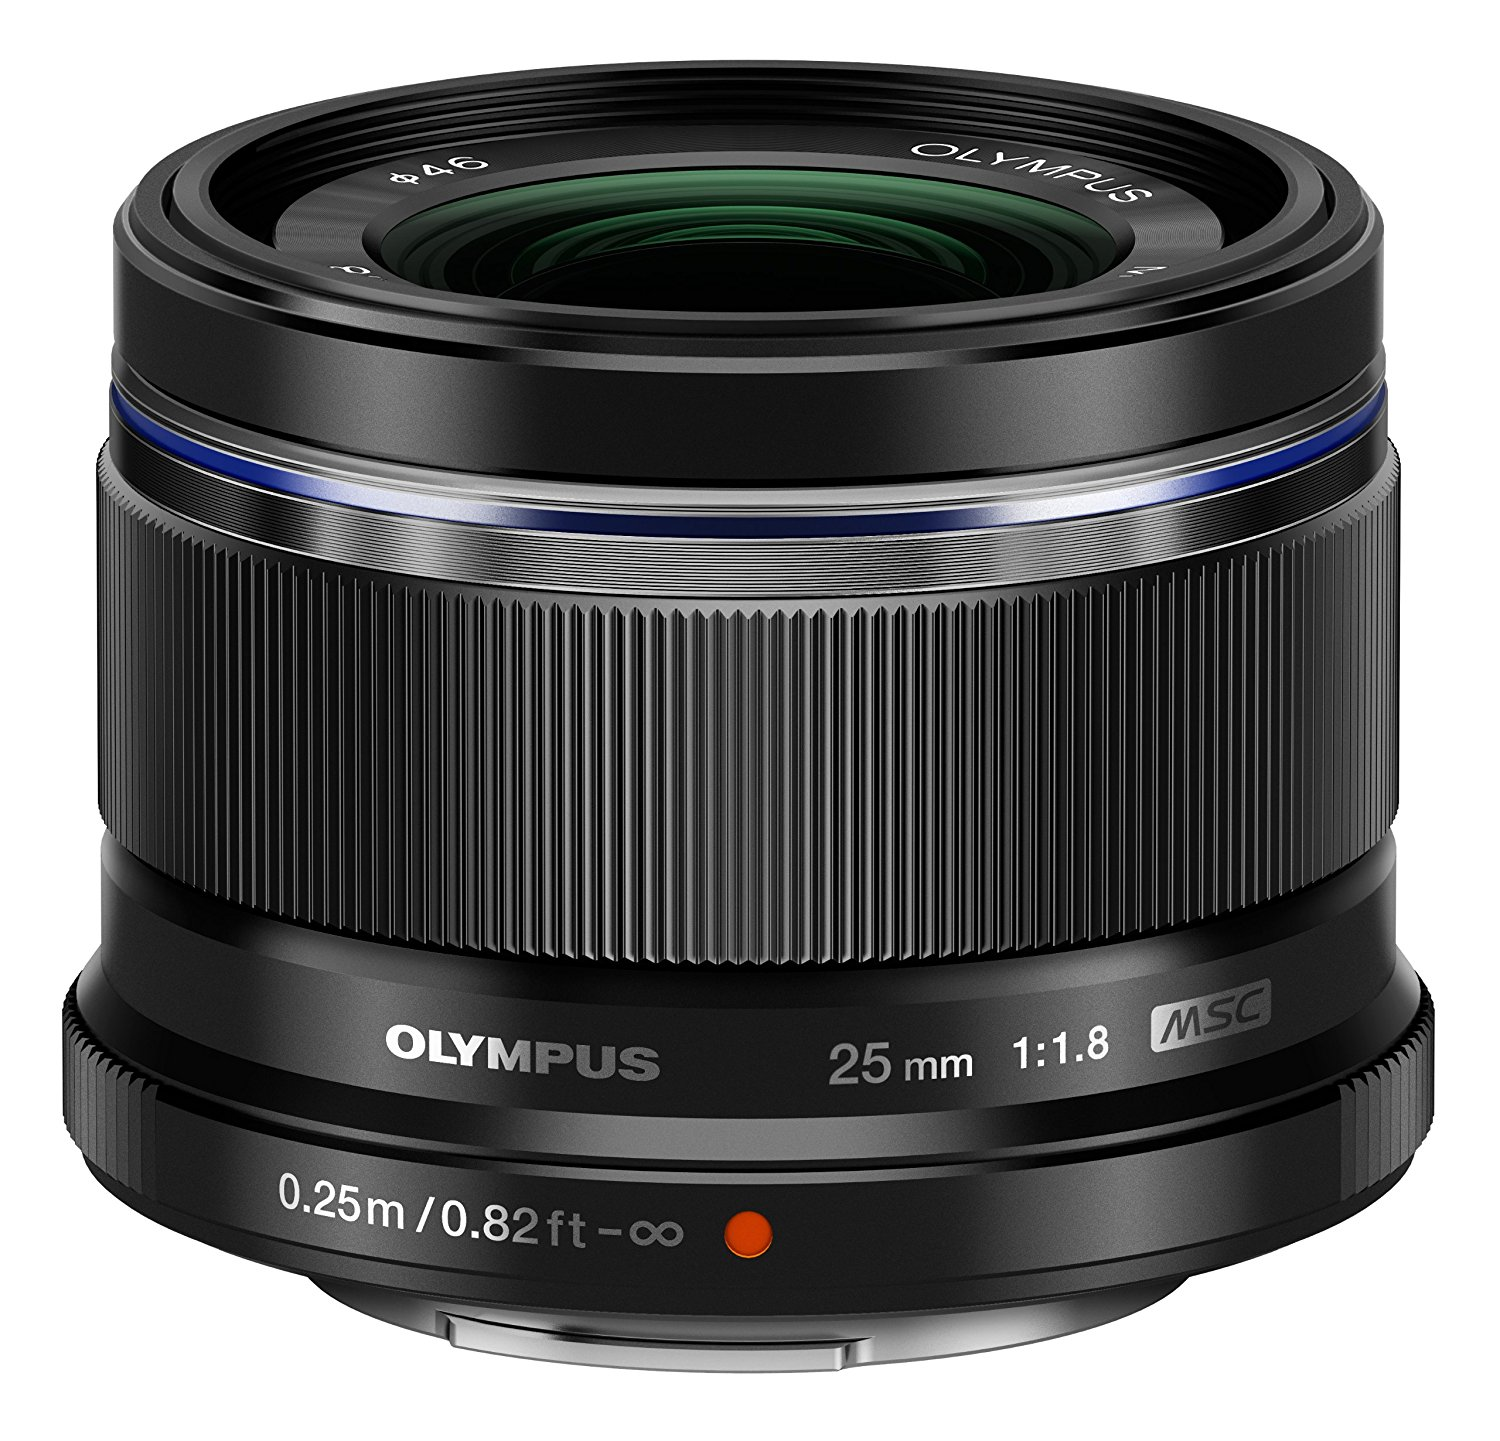 Best Micro-Four Third Lens for Street Photography - Olympus 25mm f1.8